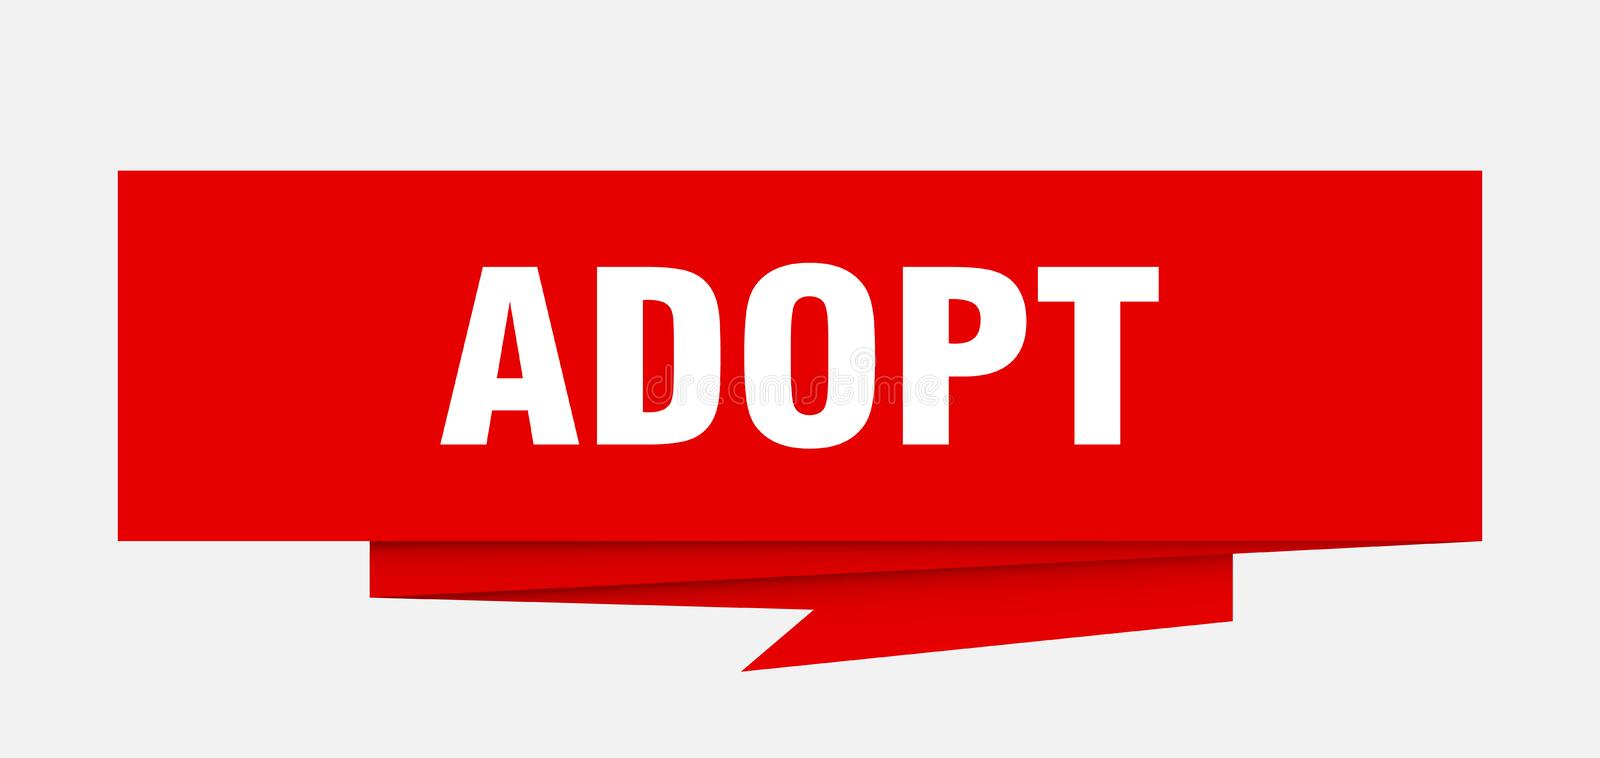 adopt stock illustratie